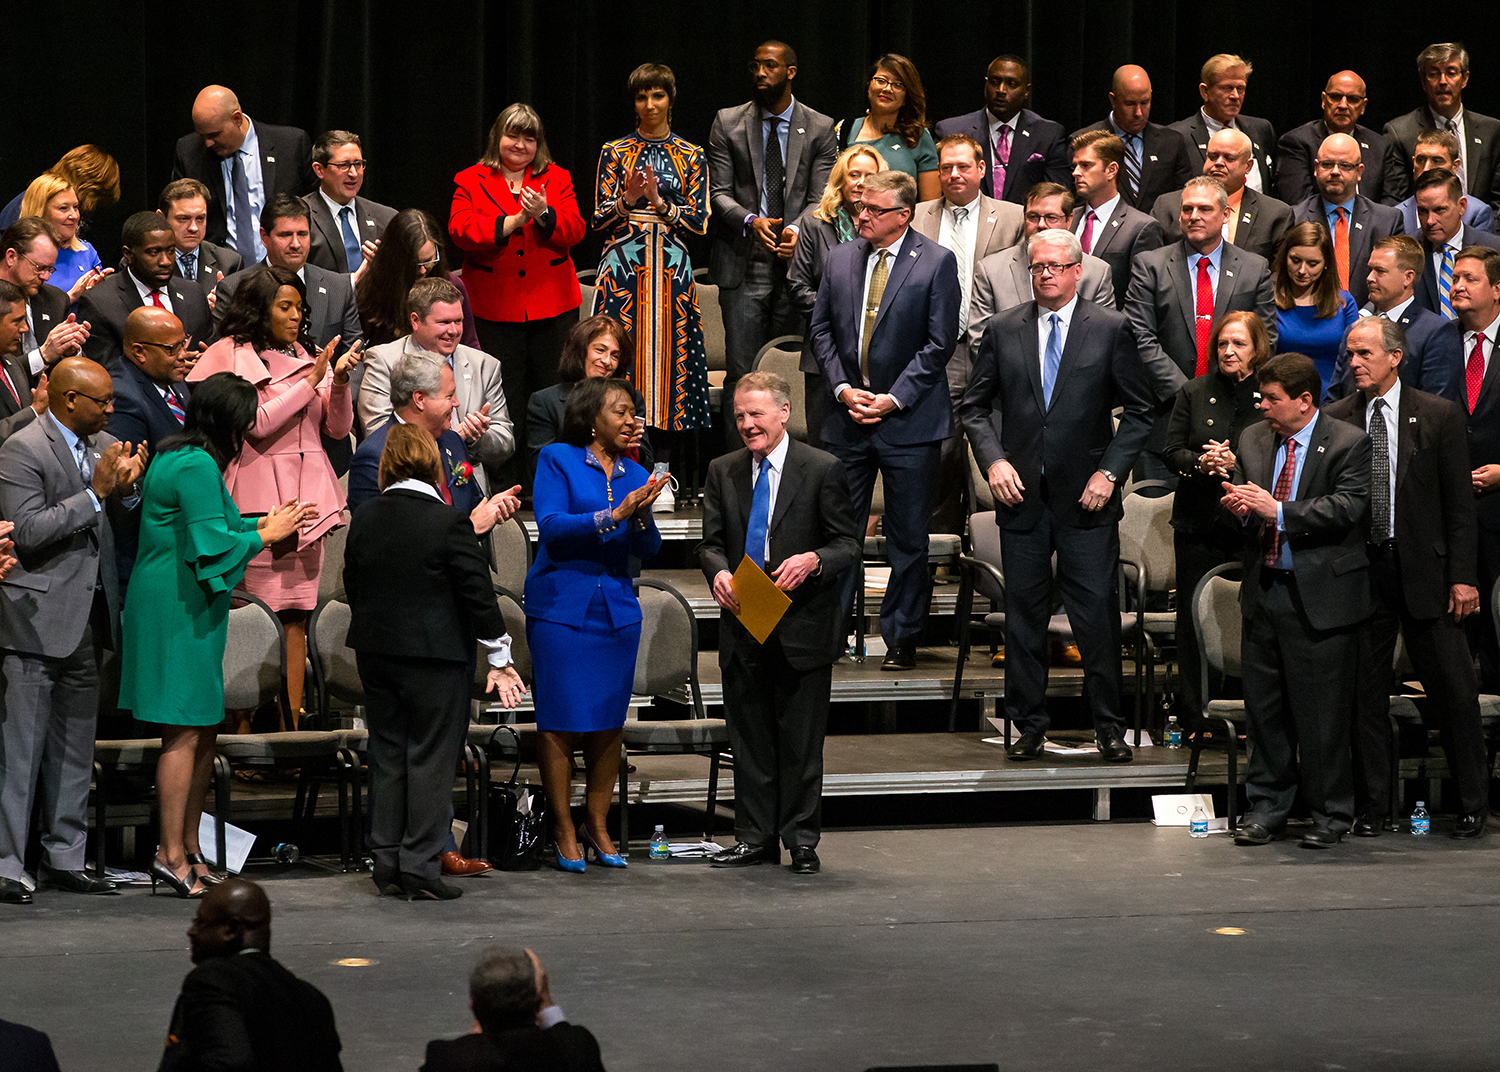 Illinois Speaker of the House Michael Madigan, D-Chicago, is applauded after being elected as the Illinois Speaker of the House for his 19th term during the inauguration ceremony for the Illinois House of Representatives for the 101st General Assembly at the University of Illinois Springfield's Sangamon Auditorium, Wednesday, Jan. 9, 2019, in Springfield, Ill. [Justin L. Fowler/The State Journal-Register]